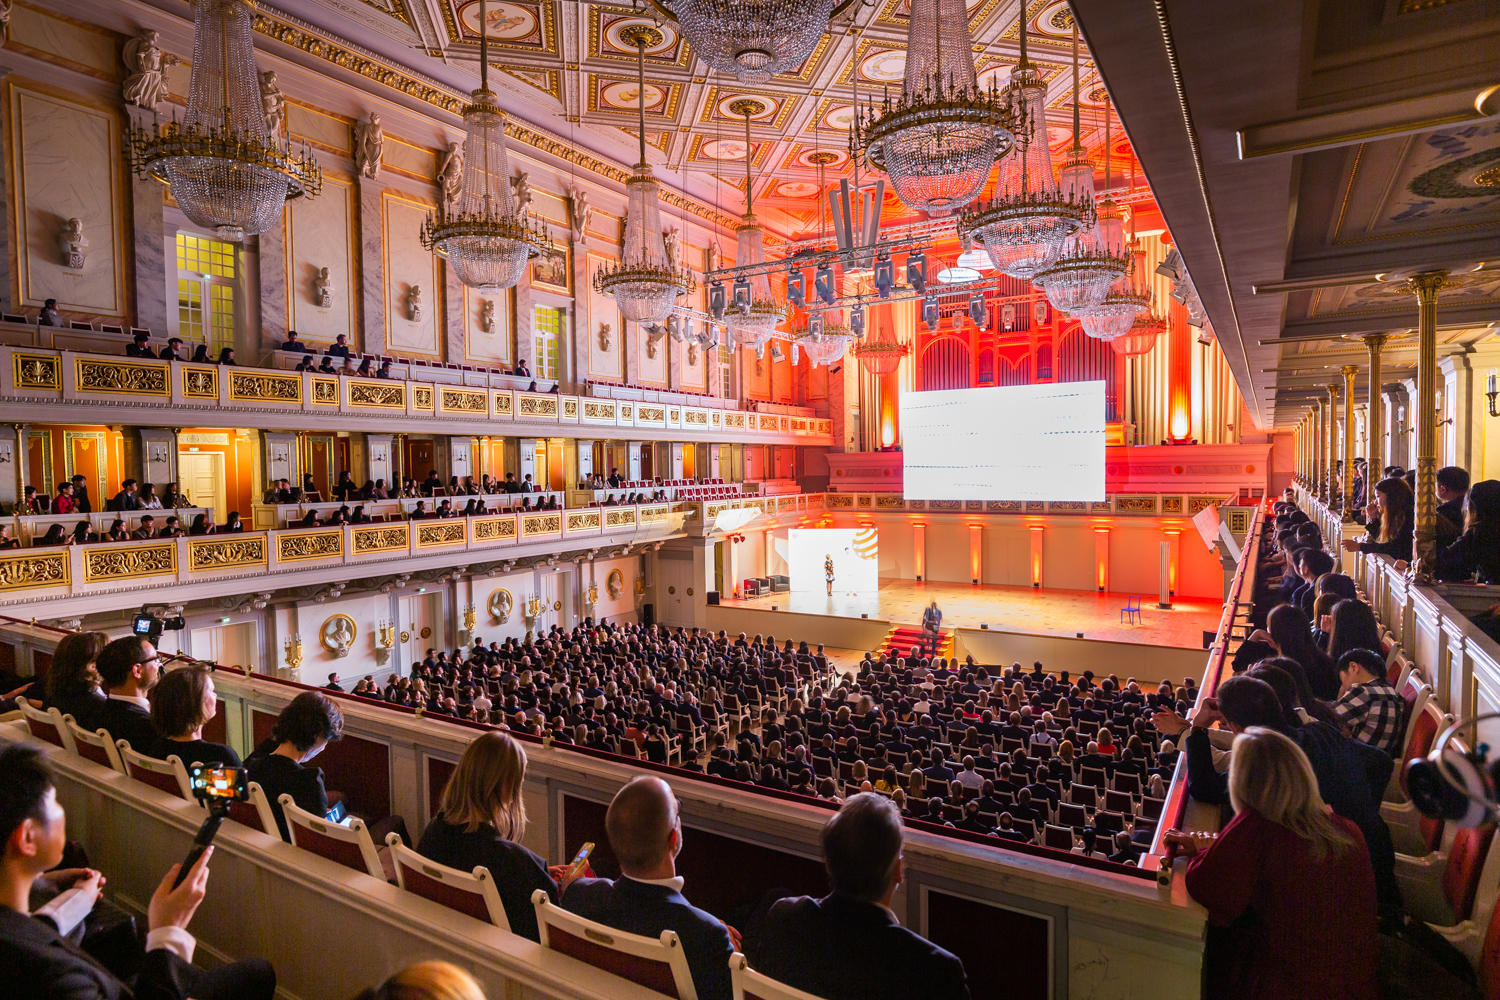 Verleihung des Red Dot Award 2019: Brands & Communication Design bei der Red Dot Gala im Berliner Konzerthaus am 1. November 2019